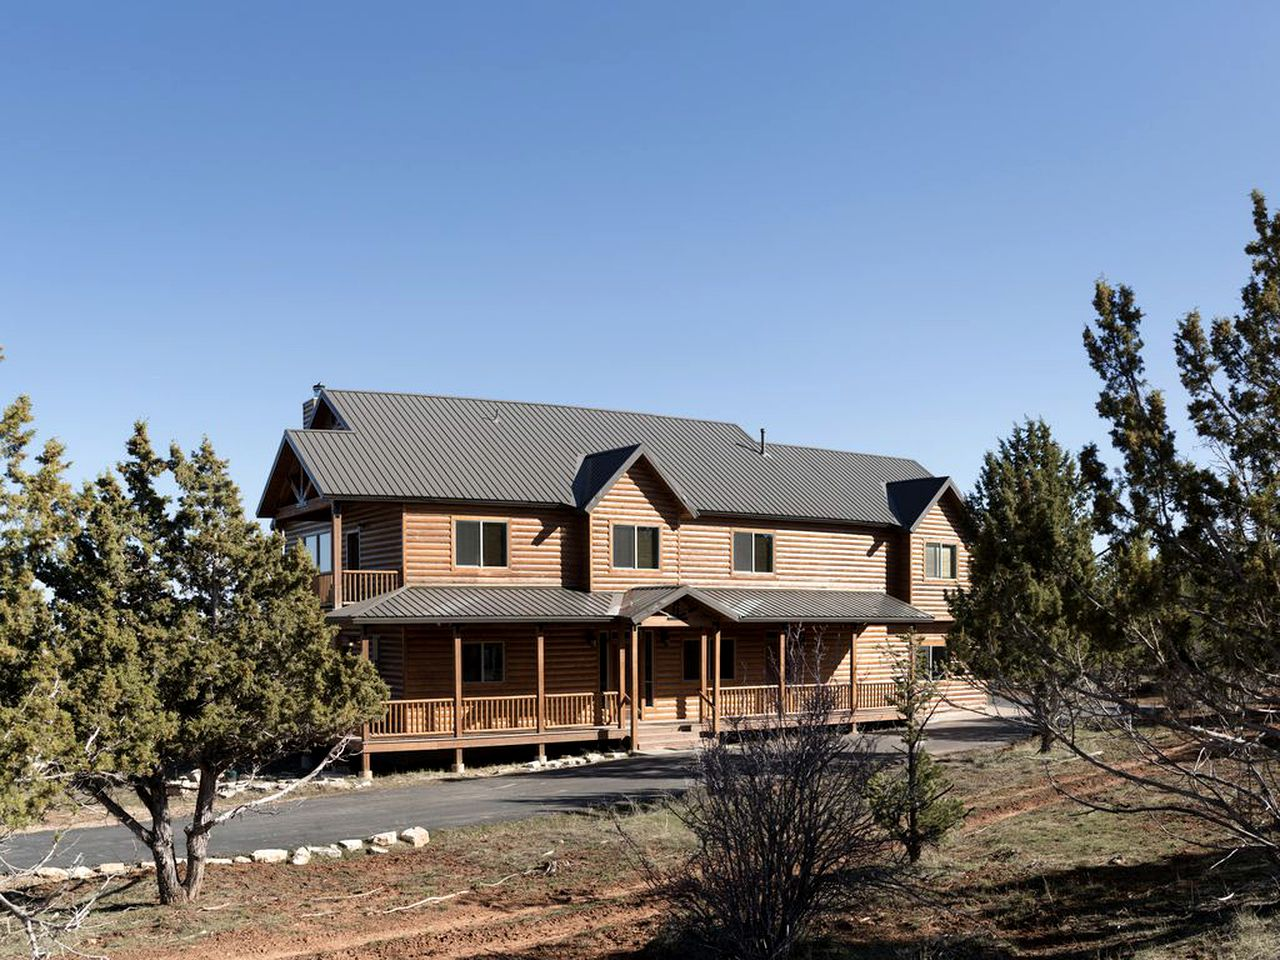 Log Cabins (Mount Carmel, Utah, United States)